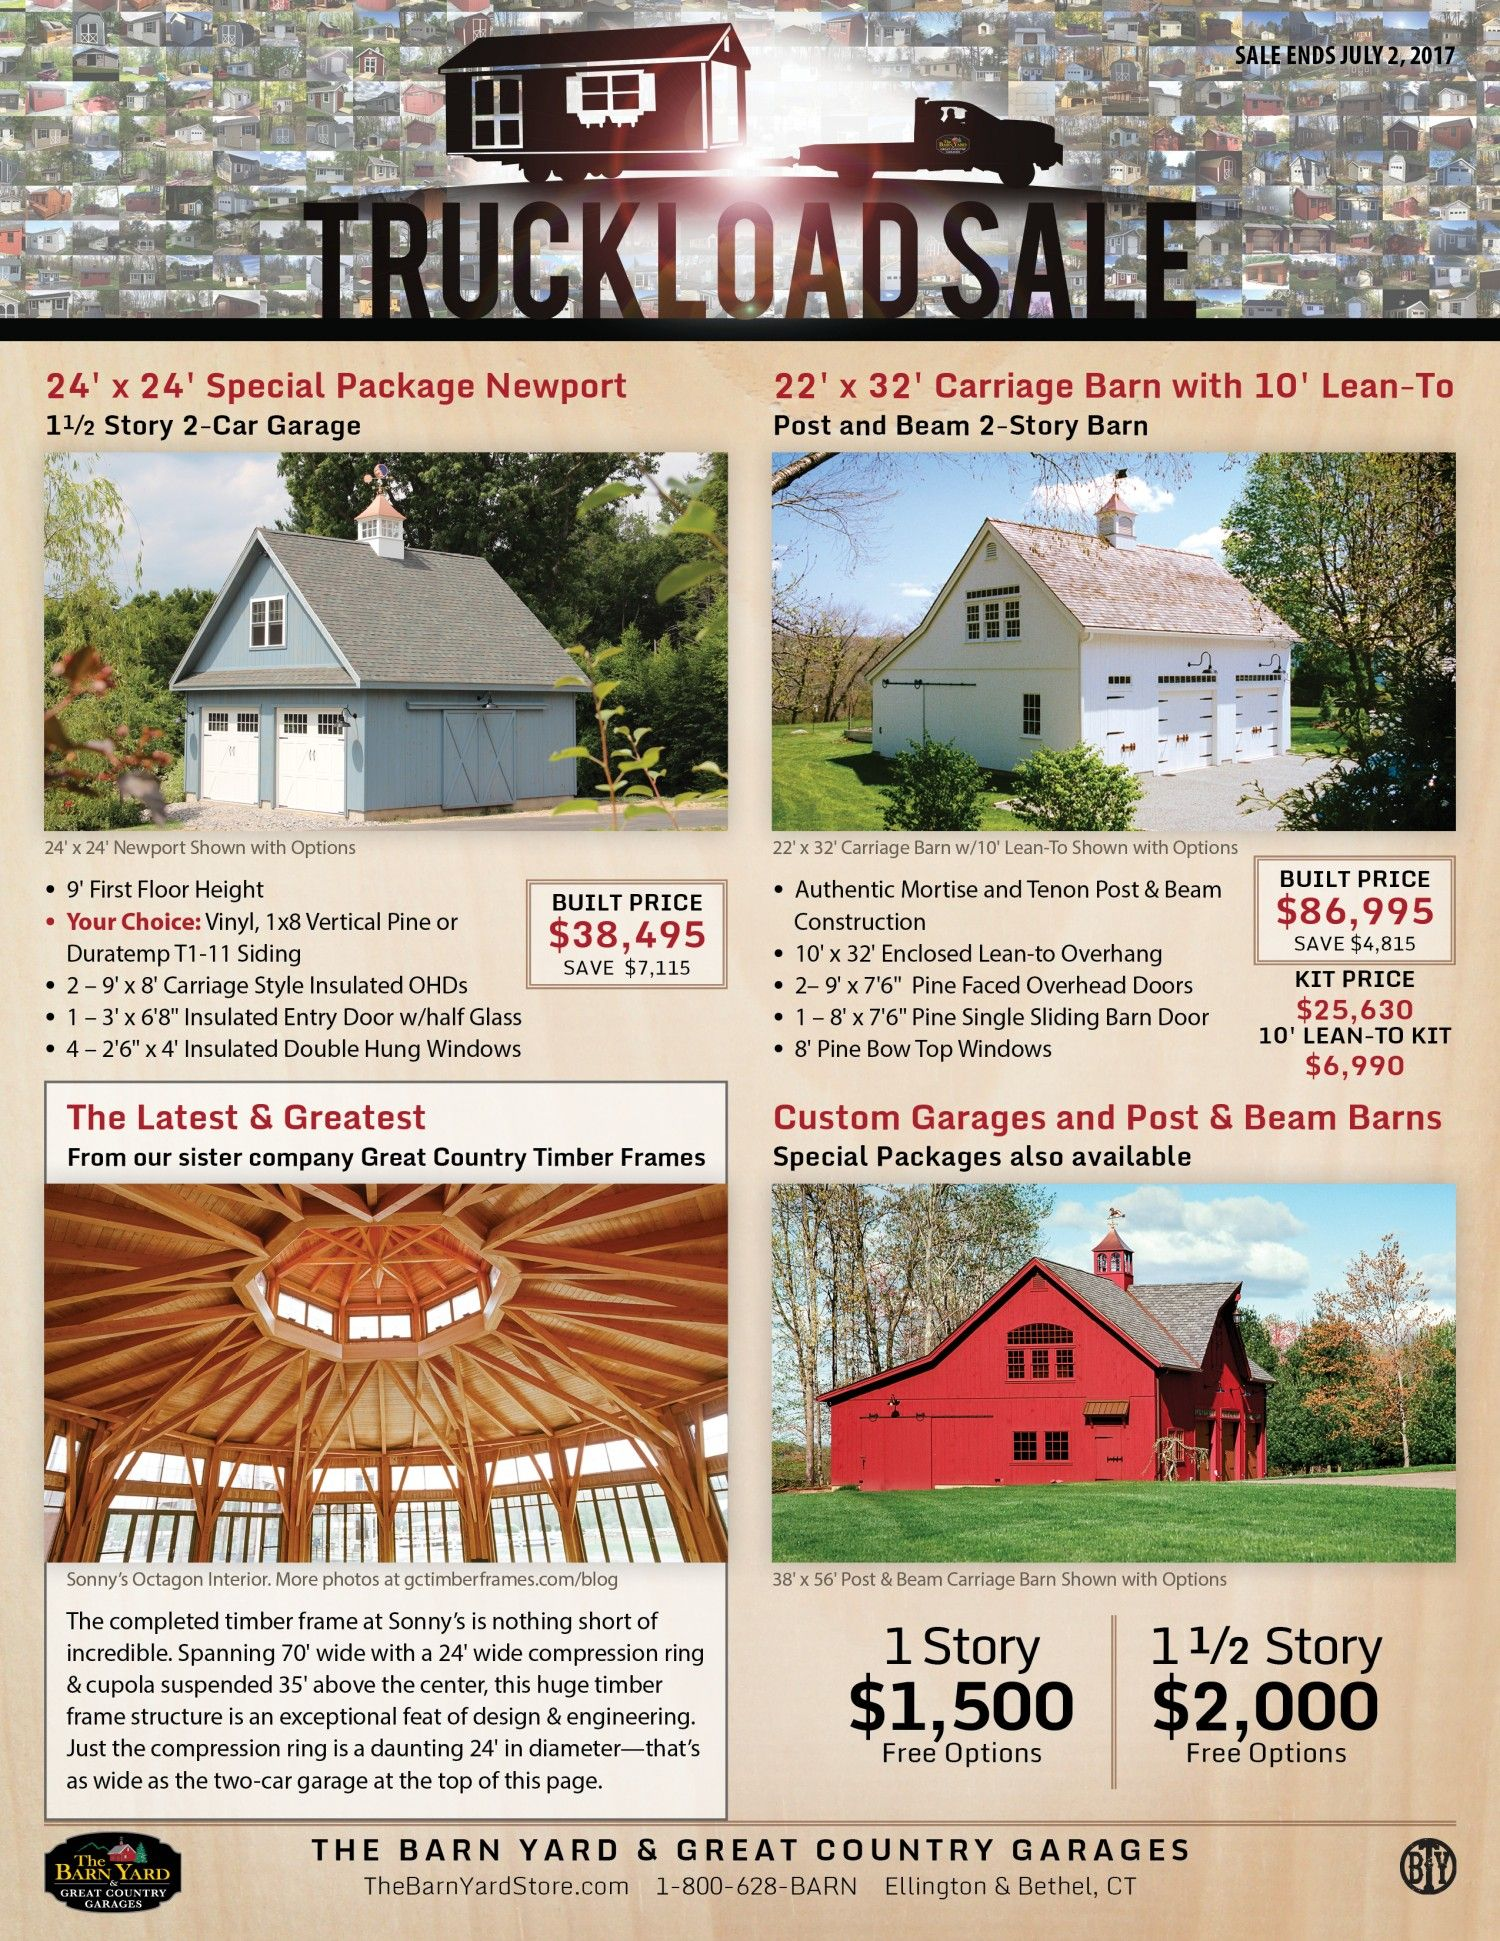 Sale: Sheds, Garages, Post & Beam Barns, Pavilions for CT, MA, RI